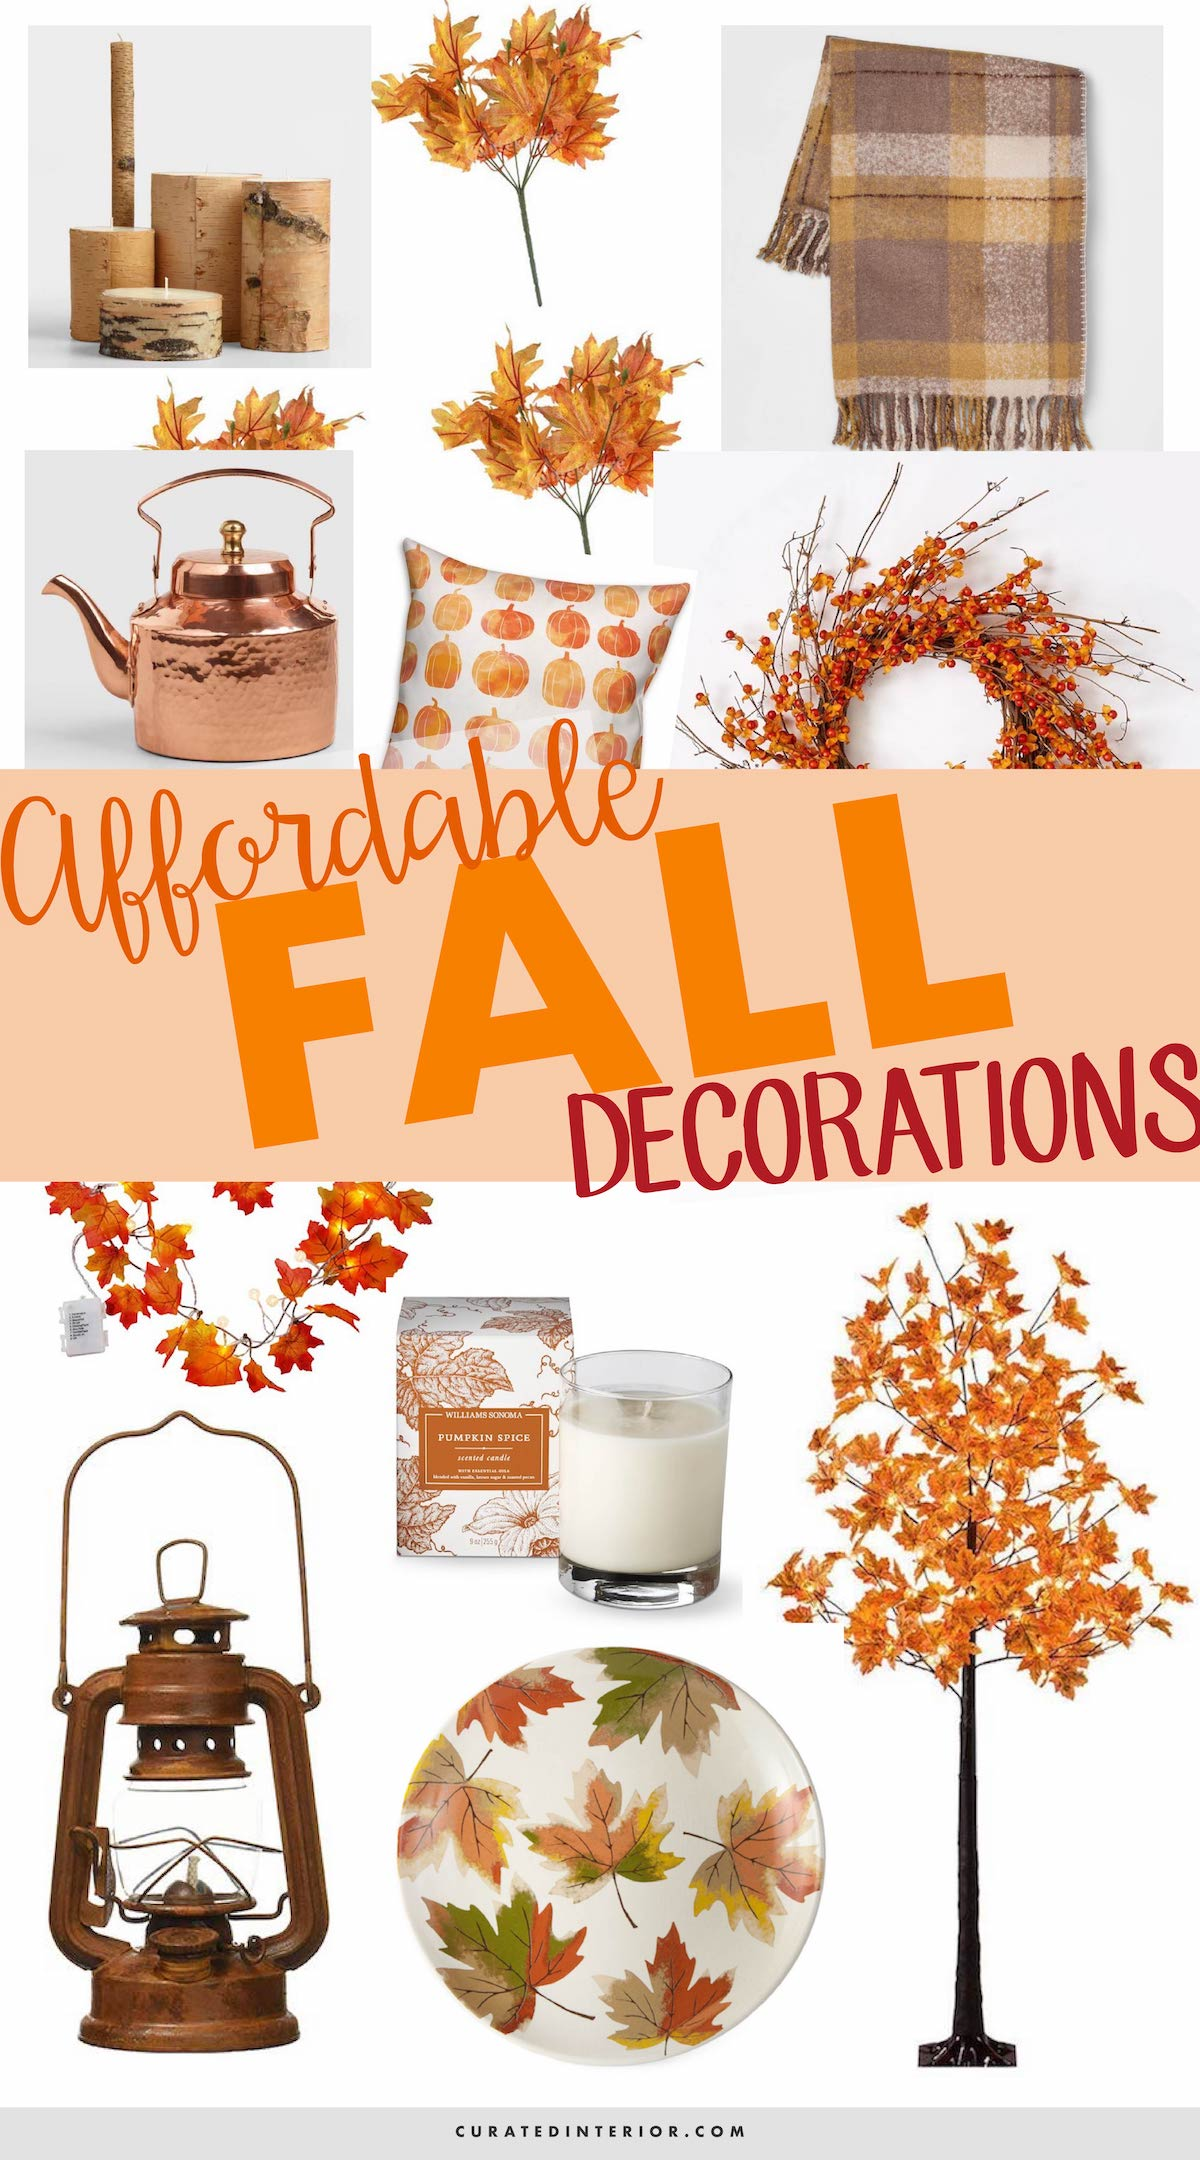 15 Affordable Fall Decorations For Autumn 2018